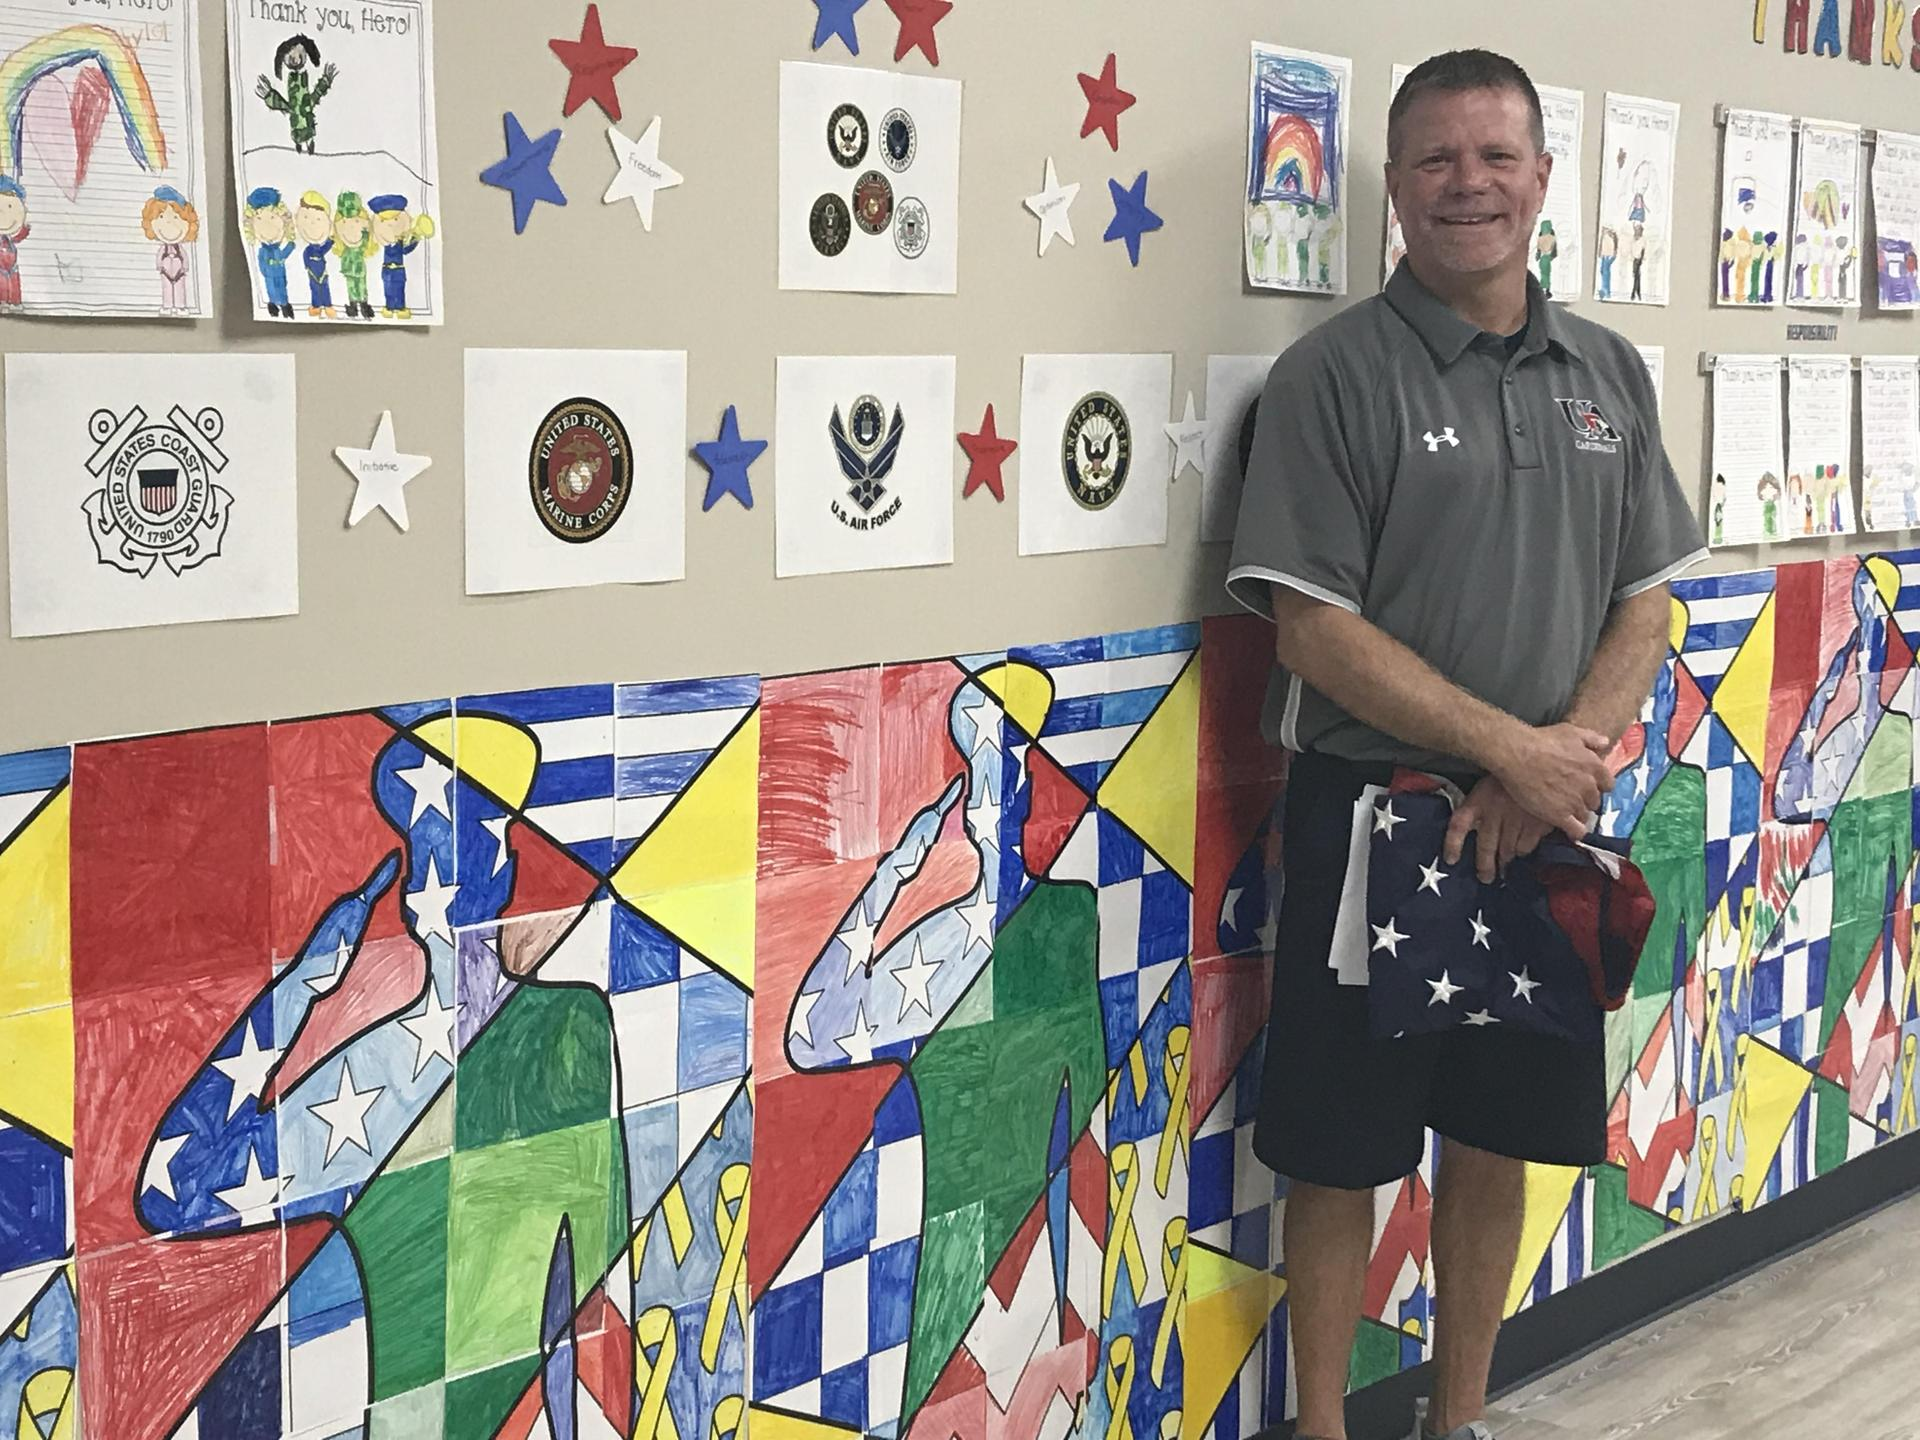 Coach Gregory is the veteran who spoke to our Kindergarteners.  Thanks for your service, Coach Gregory!